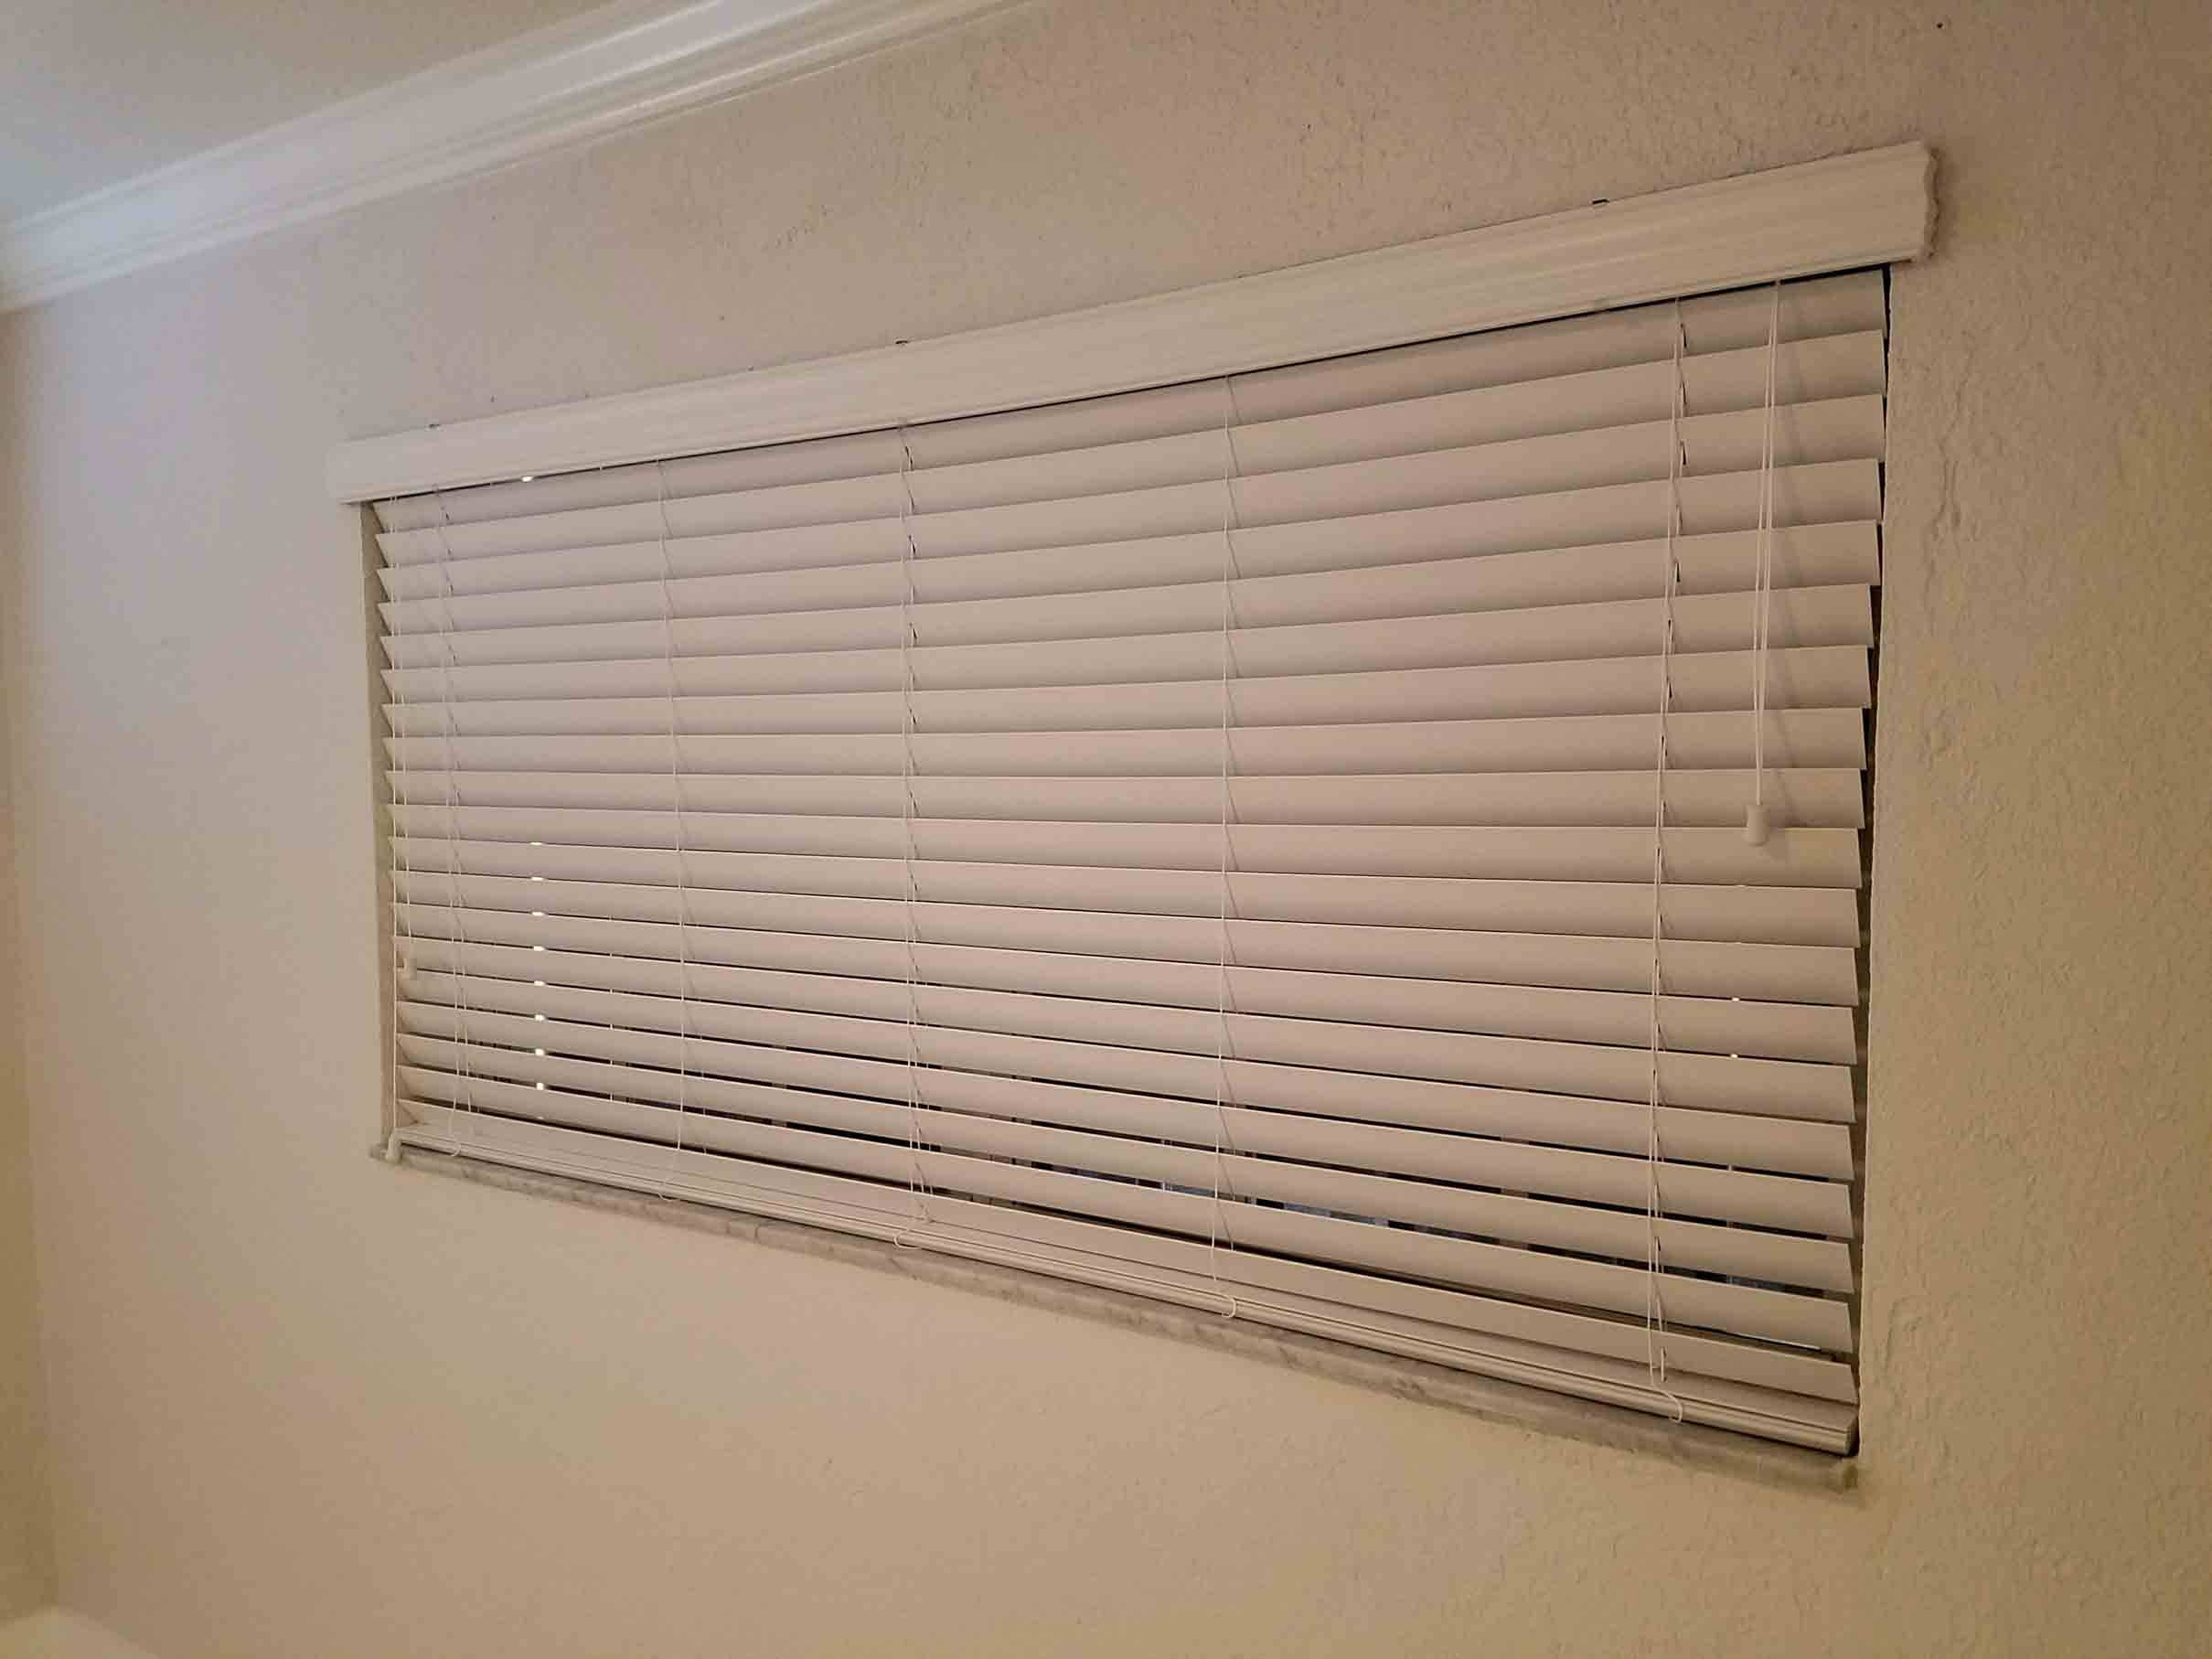 wood blinds gallery WOOD BLINDS GALLERY 20180120 121536